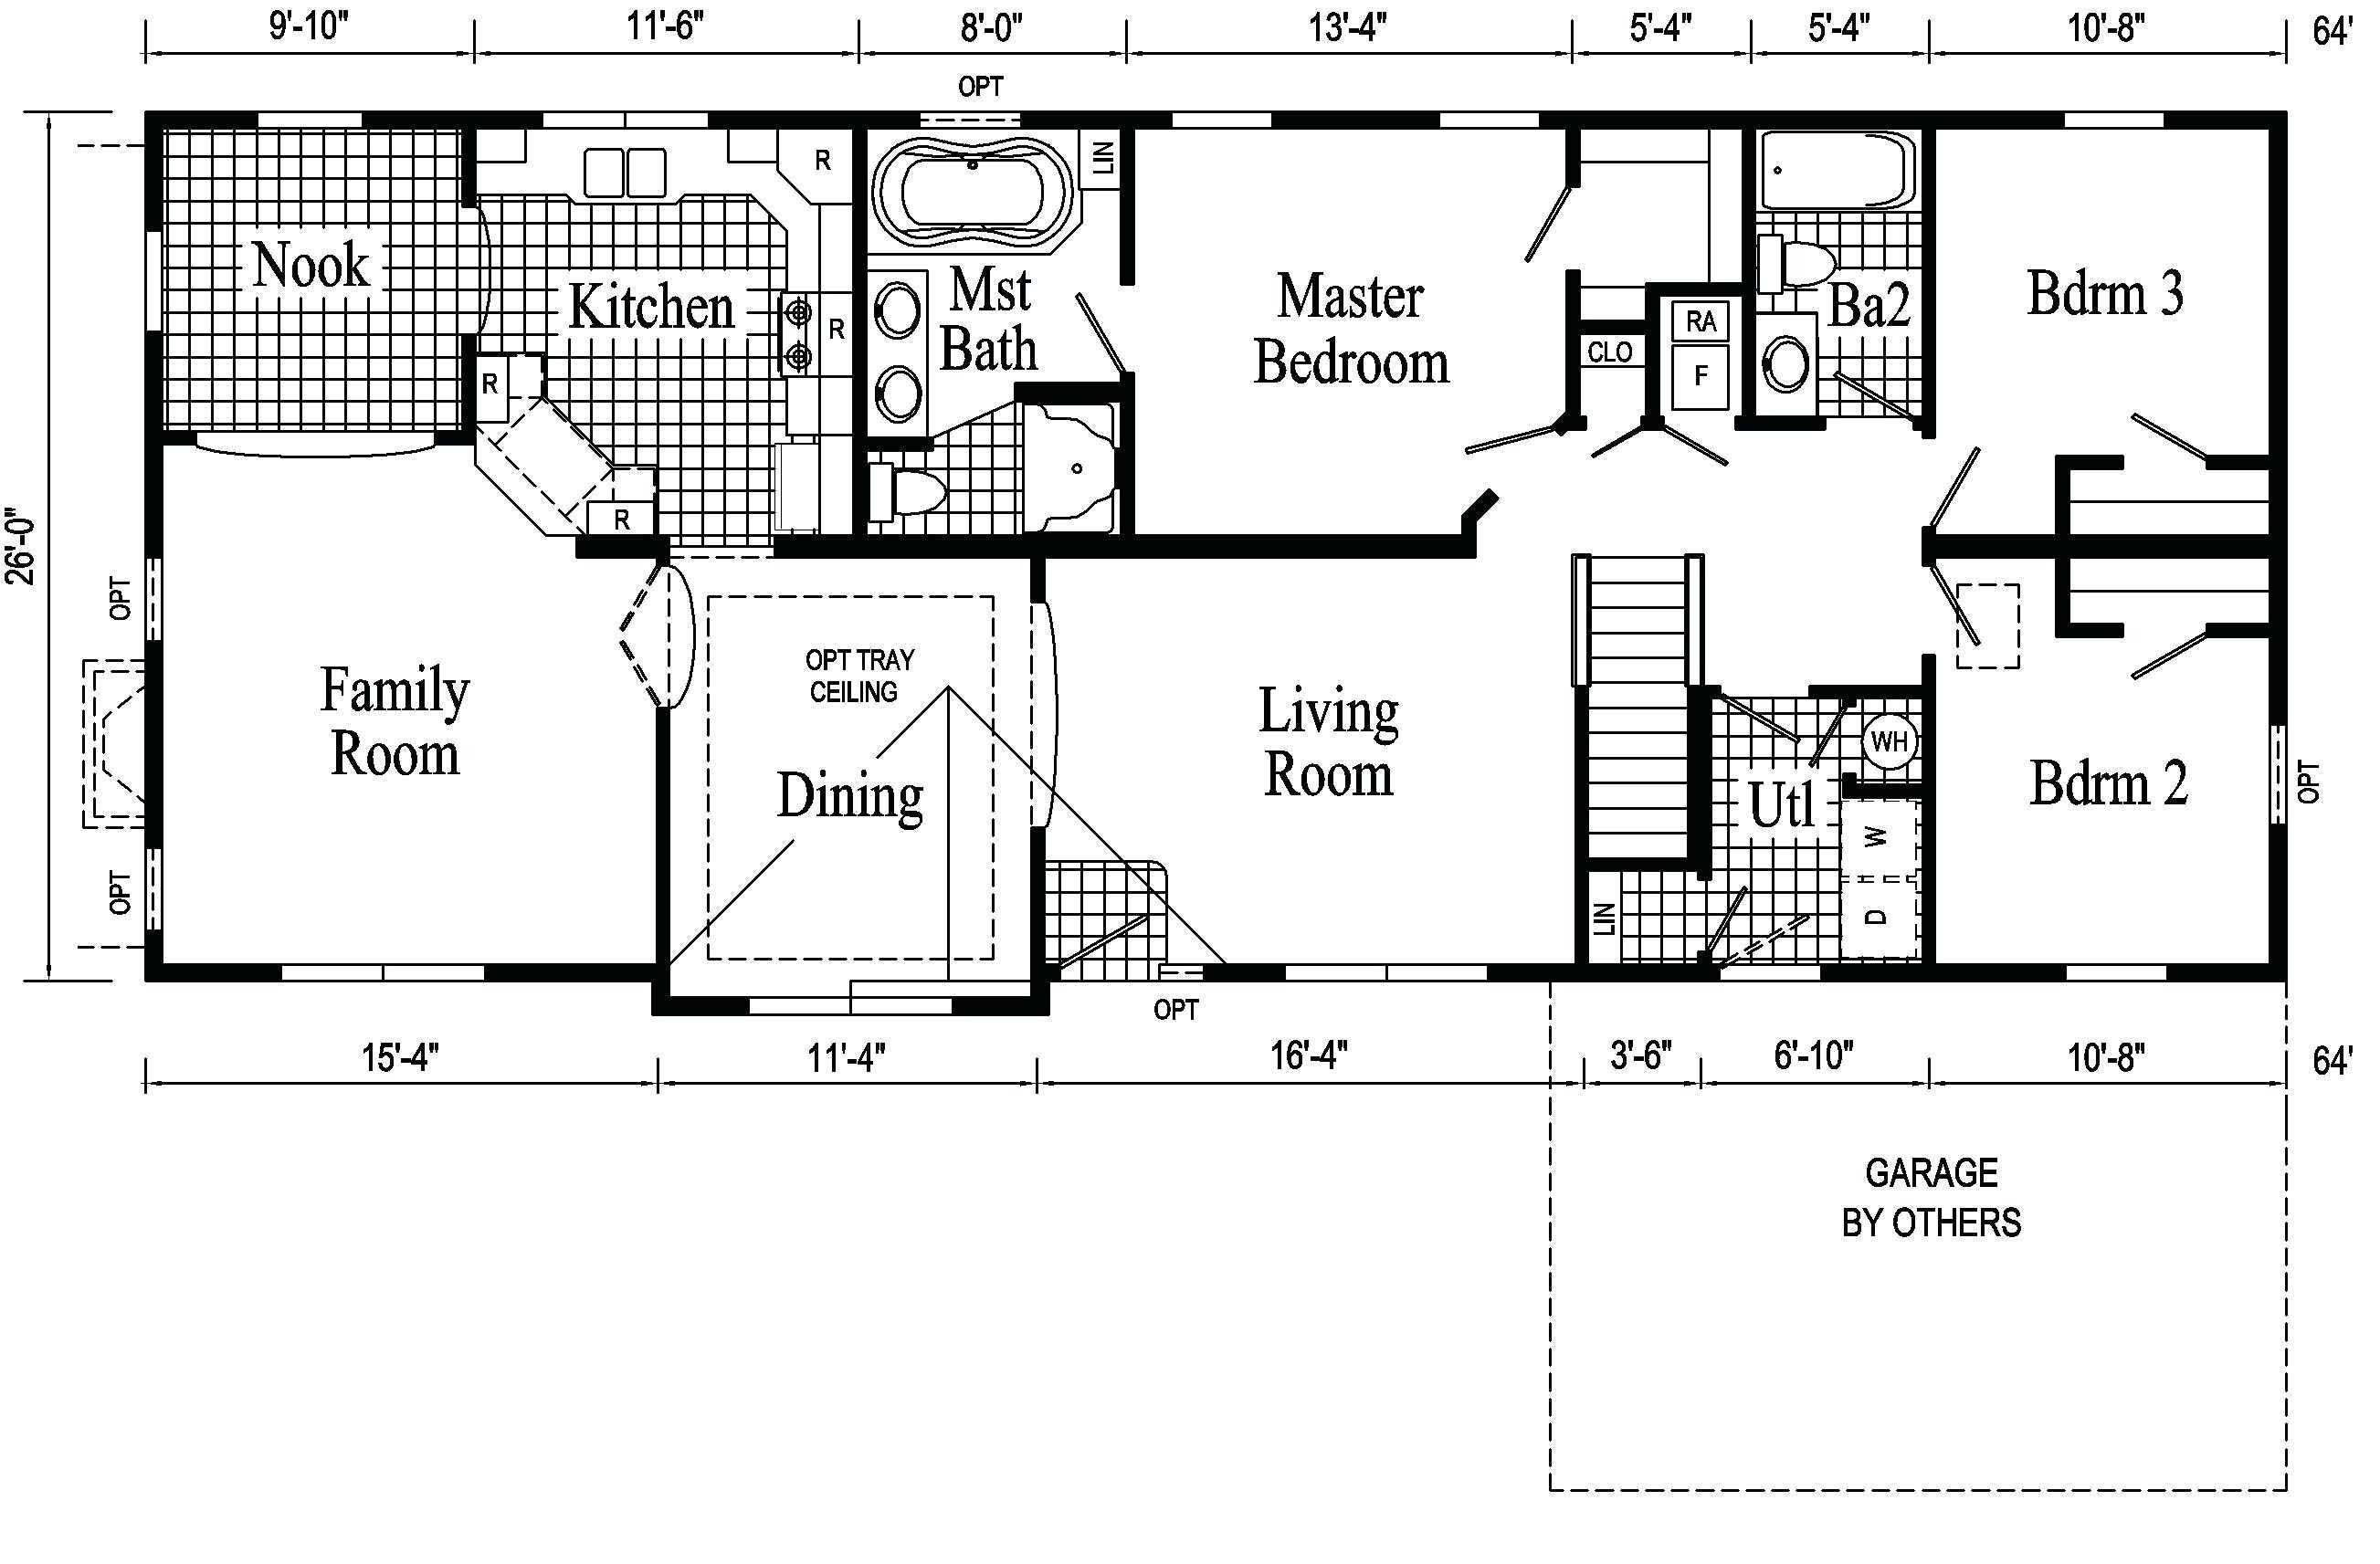 Rectangle Simple Ranch House Plans Luxury Rectangle Simple Ranch House Plans Rectangle S Floor Plans Ranch Open Concept House Plans Ranch House Floor Plans